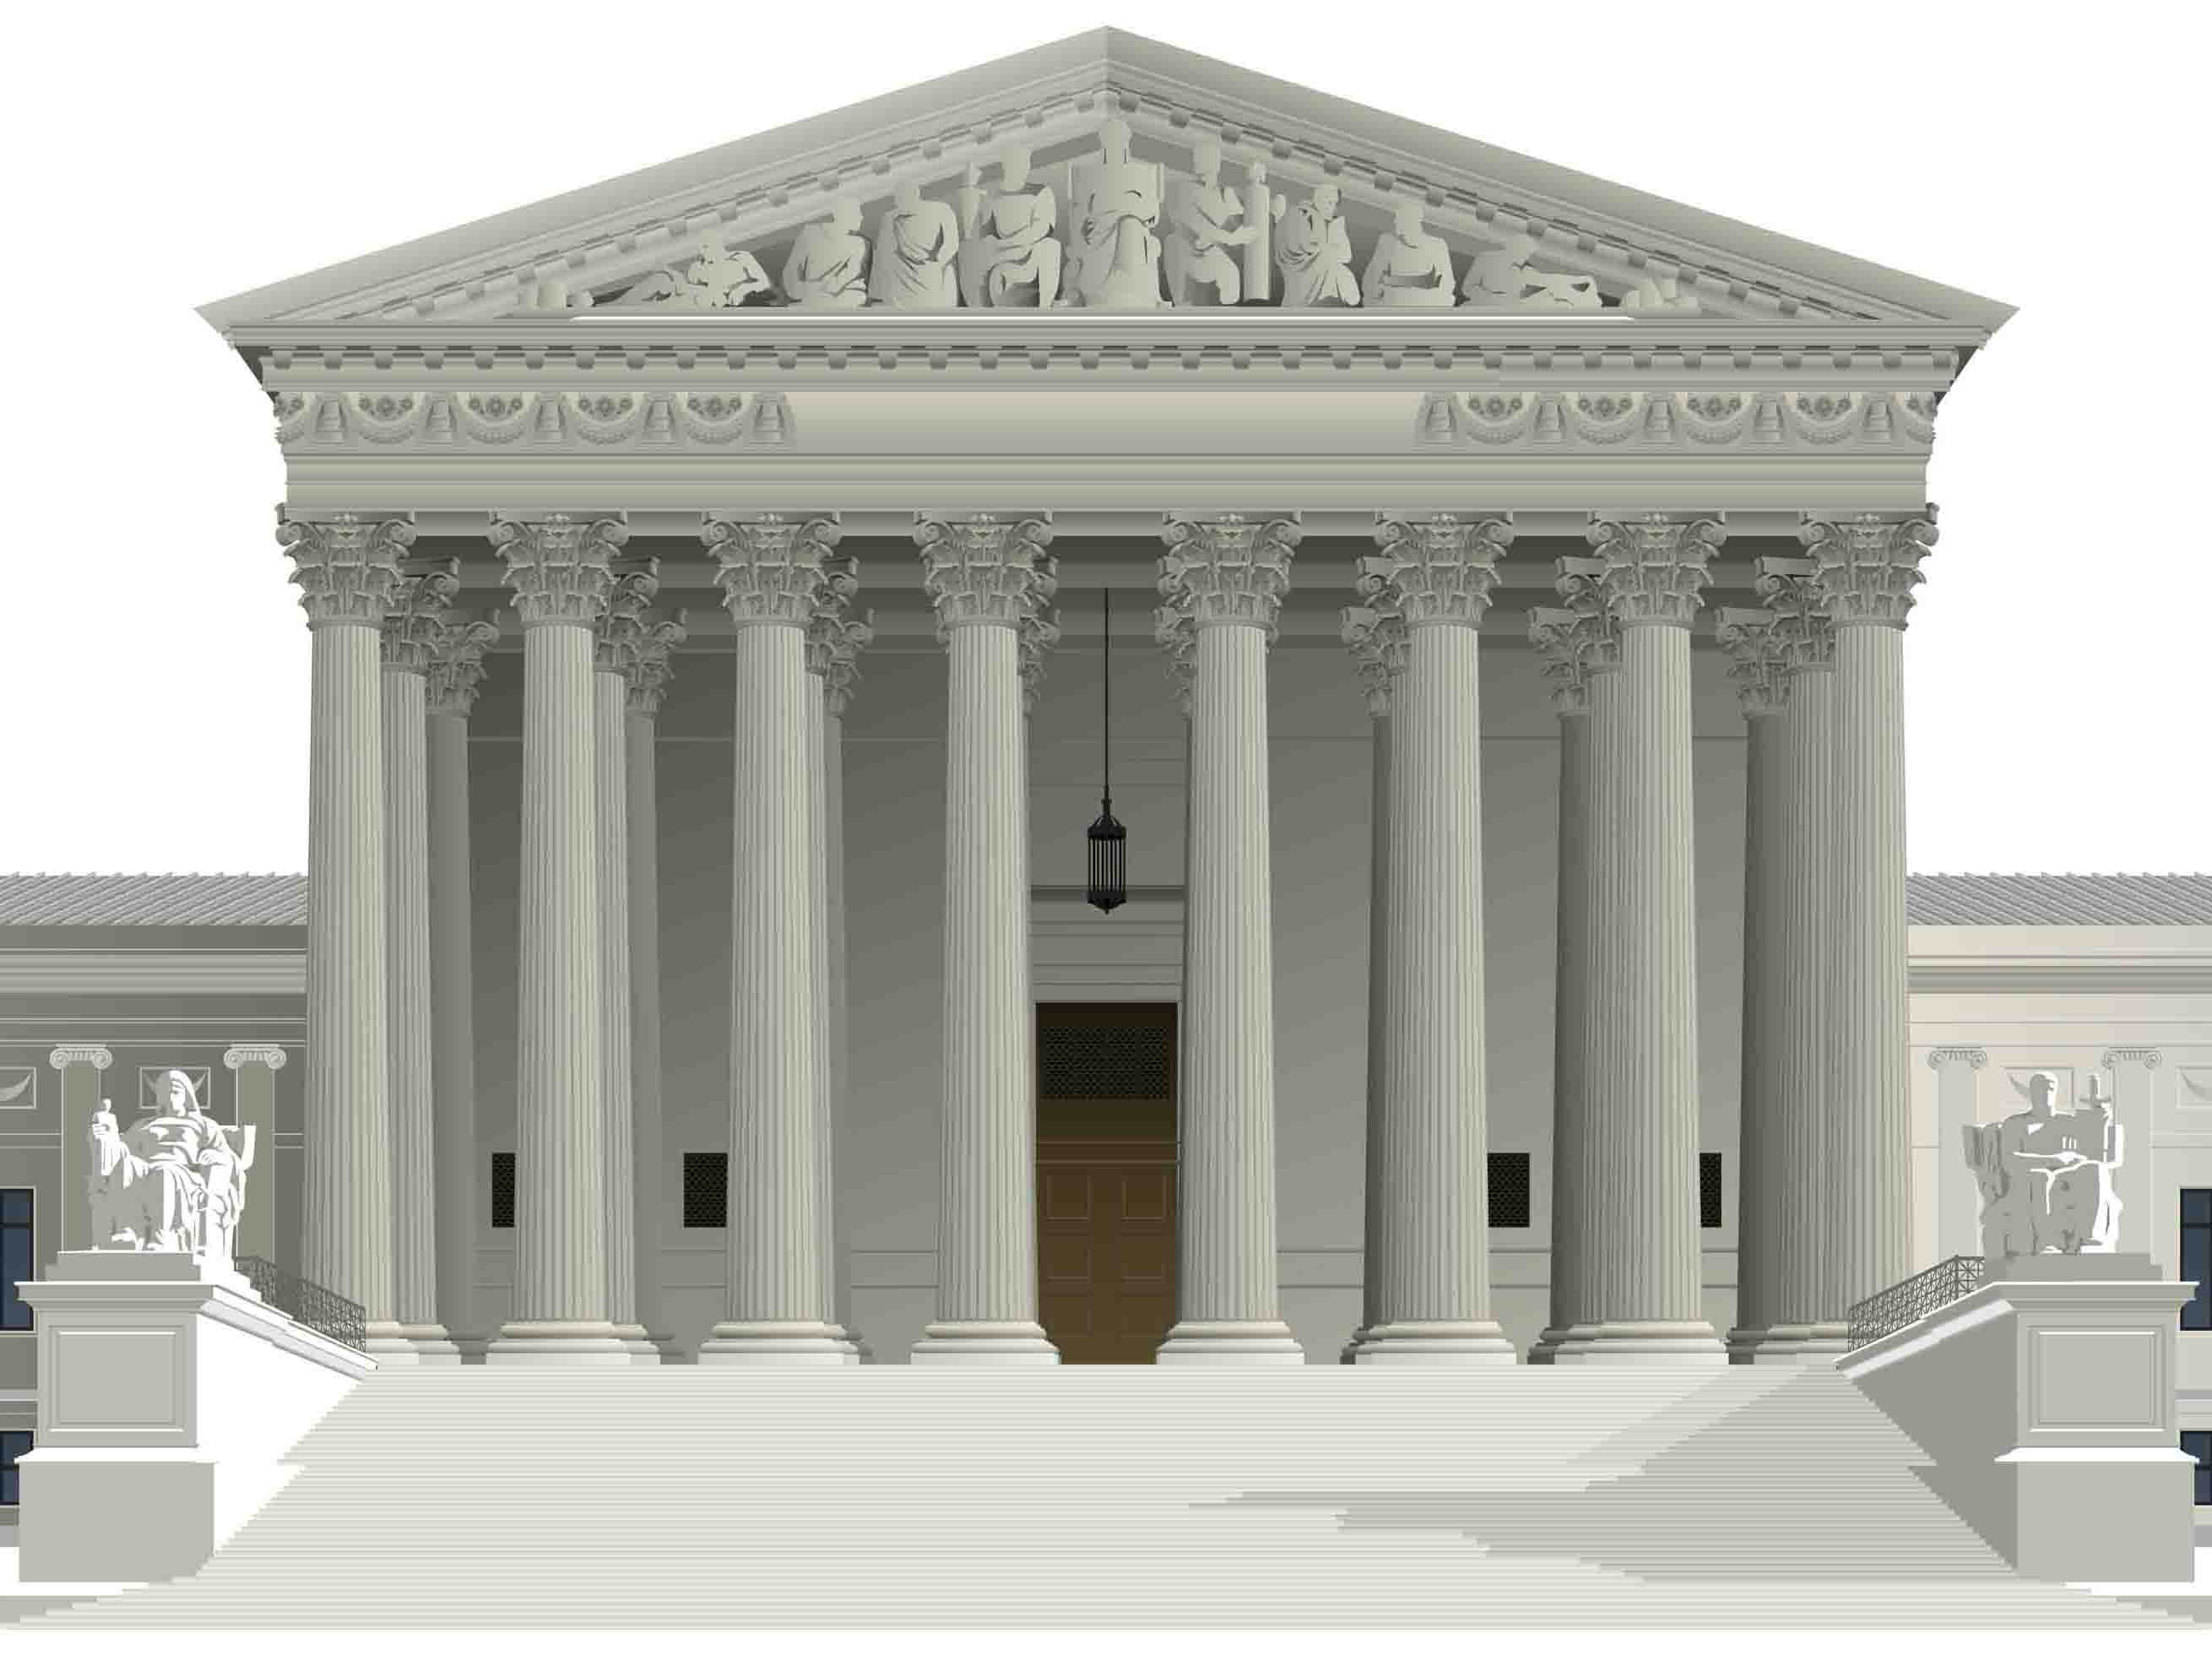 illustration of the supreme court building